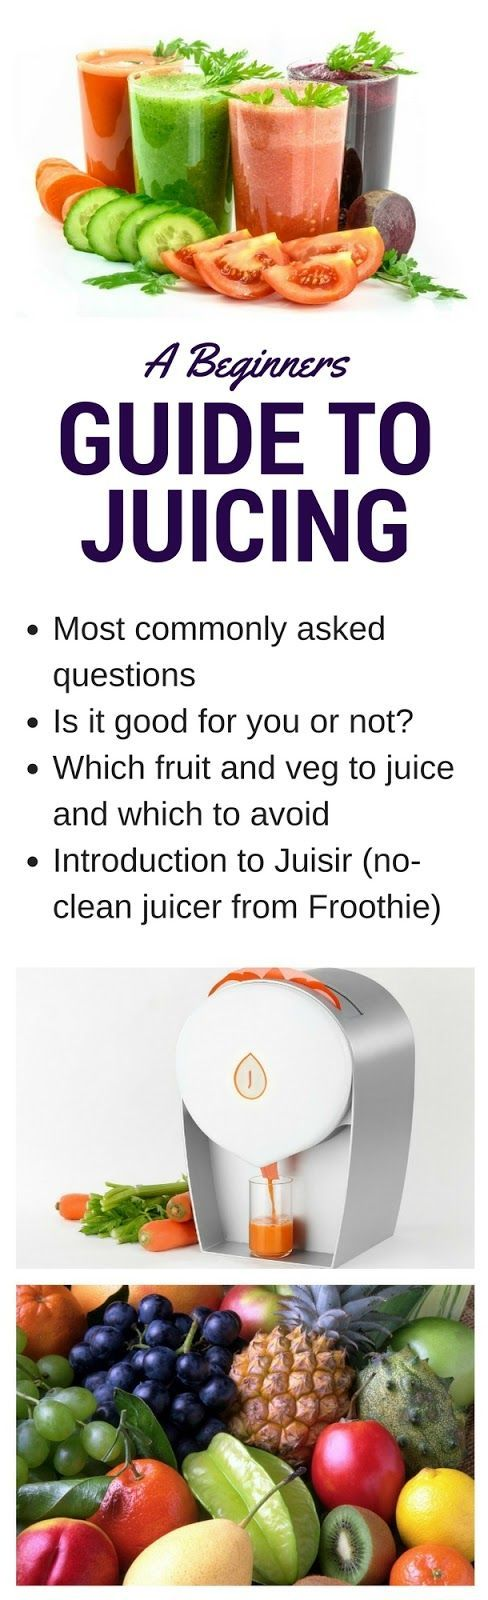 An easy guide to juicing, why it's good for you and what to juice as well as an introduction to the Juisir, a new no-clean juicer from Froothie.